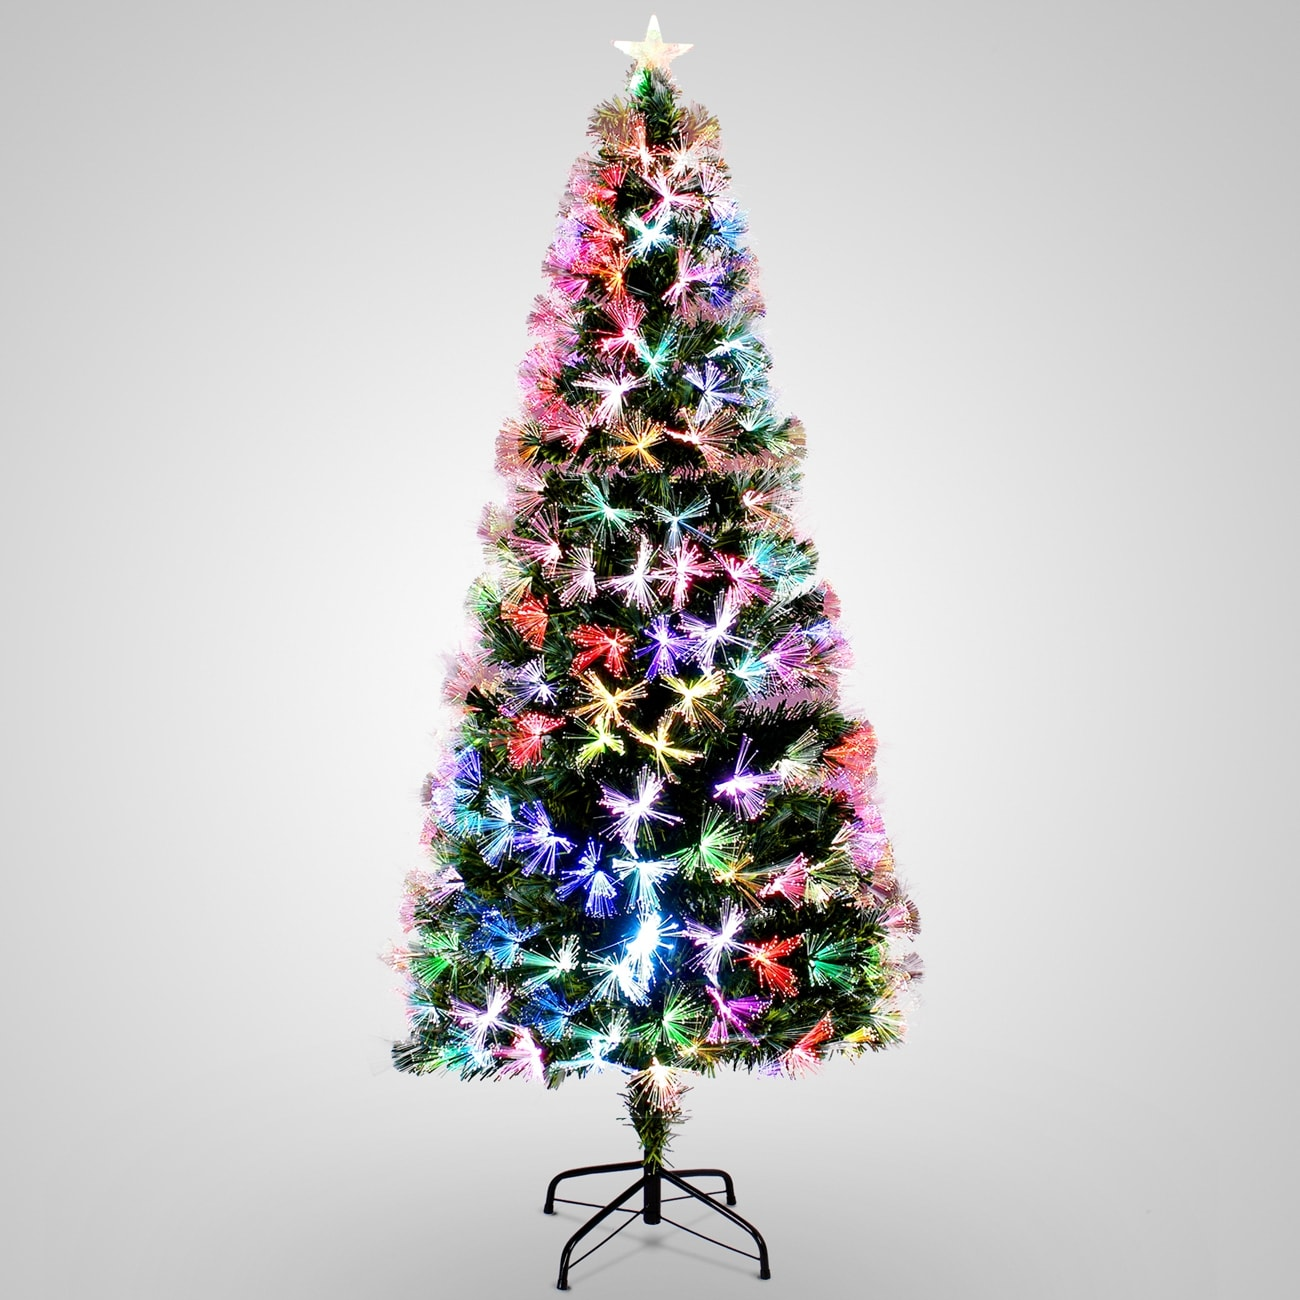 Belleze 7-feet Artificial Pre-Lit Fiber Optic Christmas Tree Color Light Snowflakes Top Star Decorations with Stand